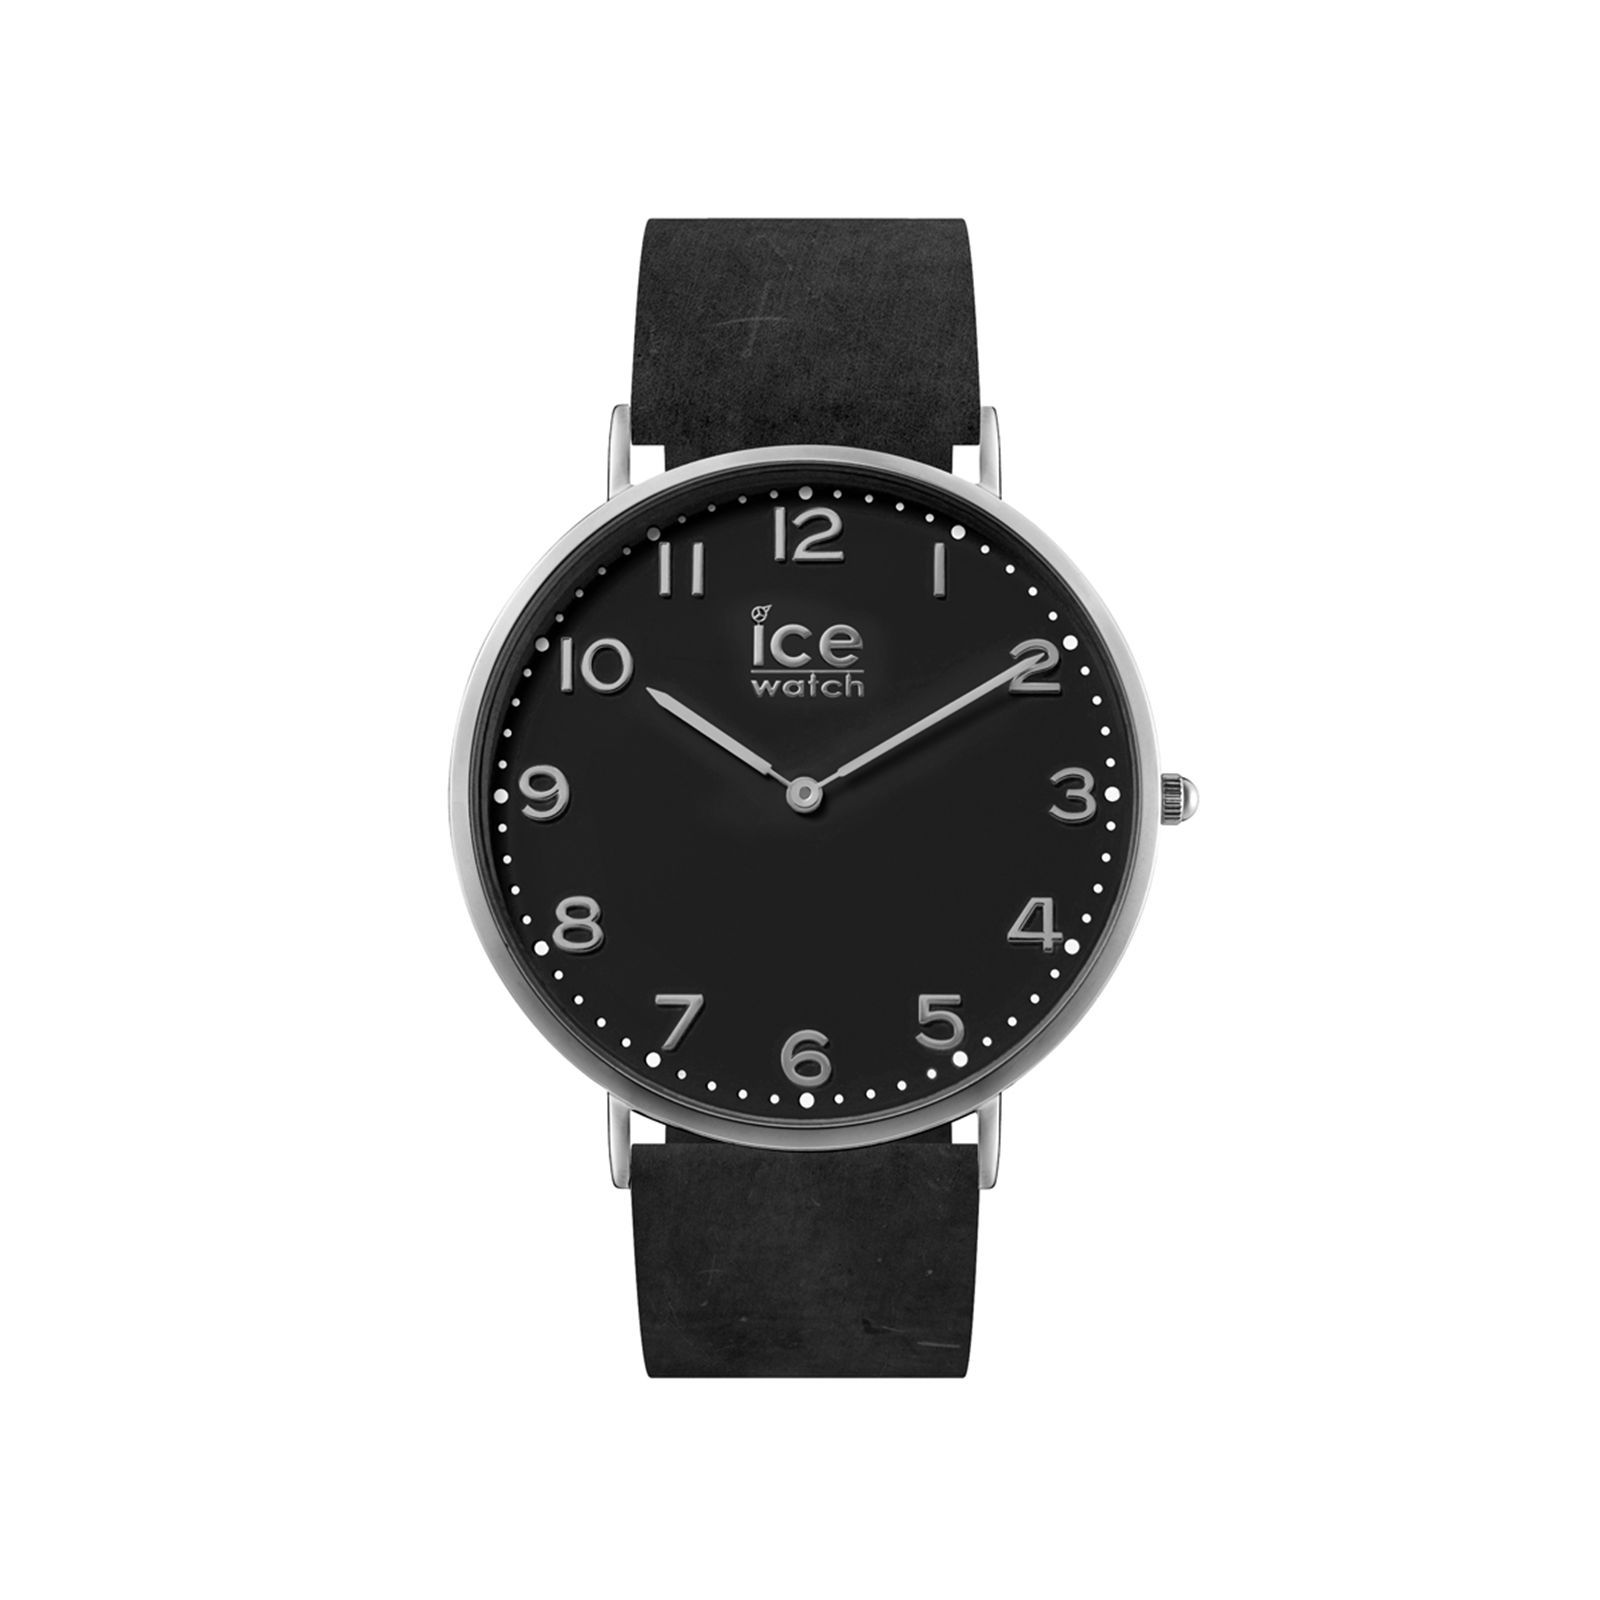 ice watch montre bracelet en cuir noir brandalley. Black Bedroom Furniture Sets. Home Design Ideas